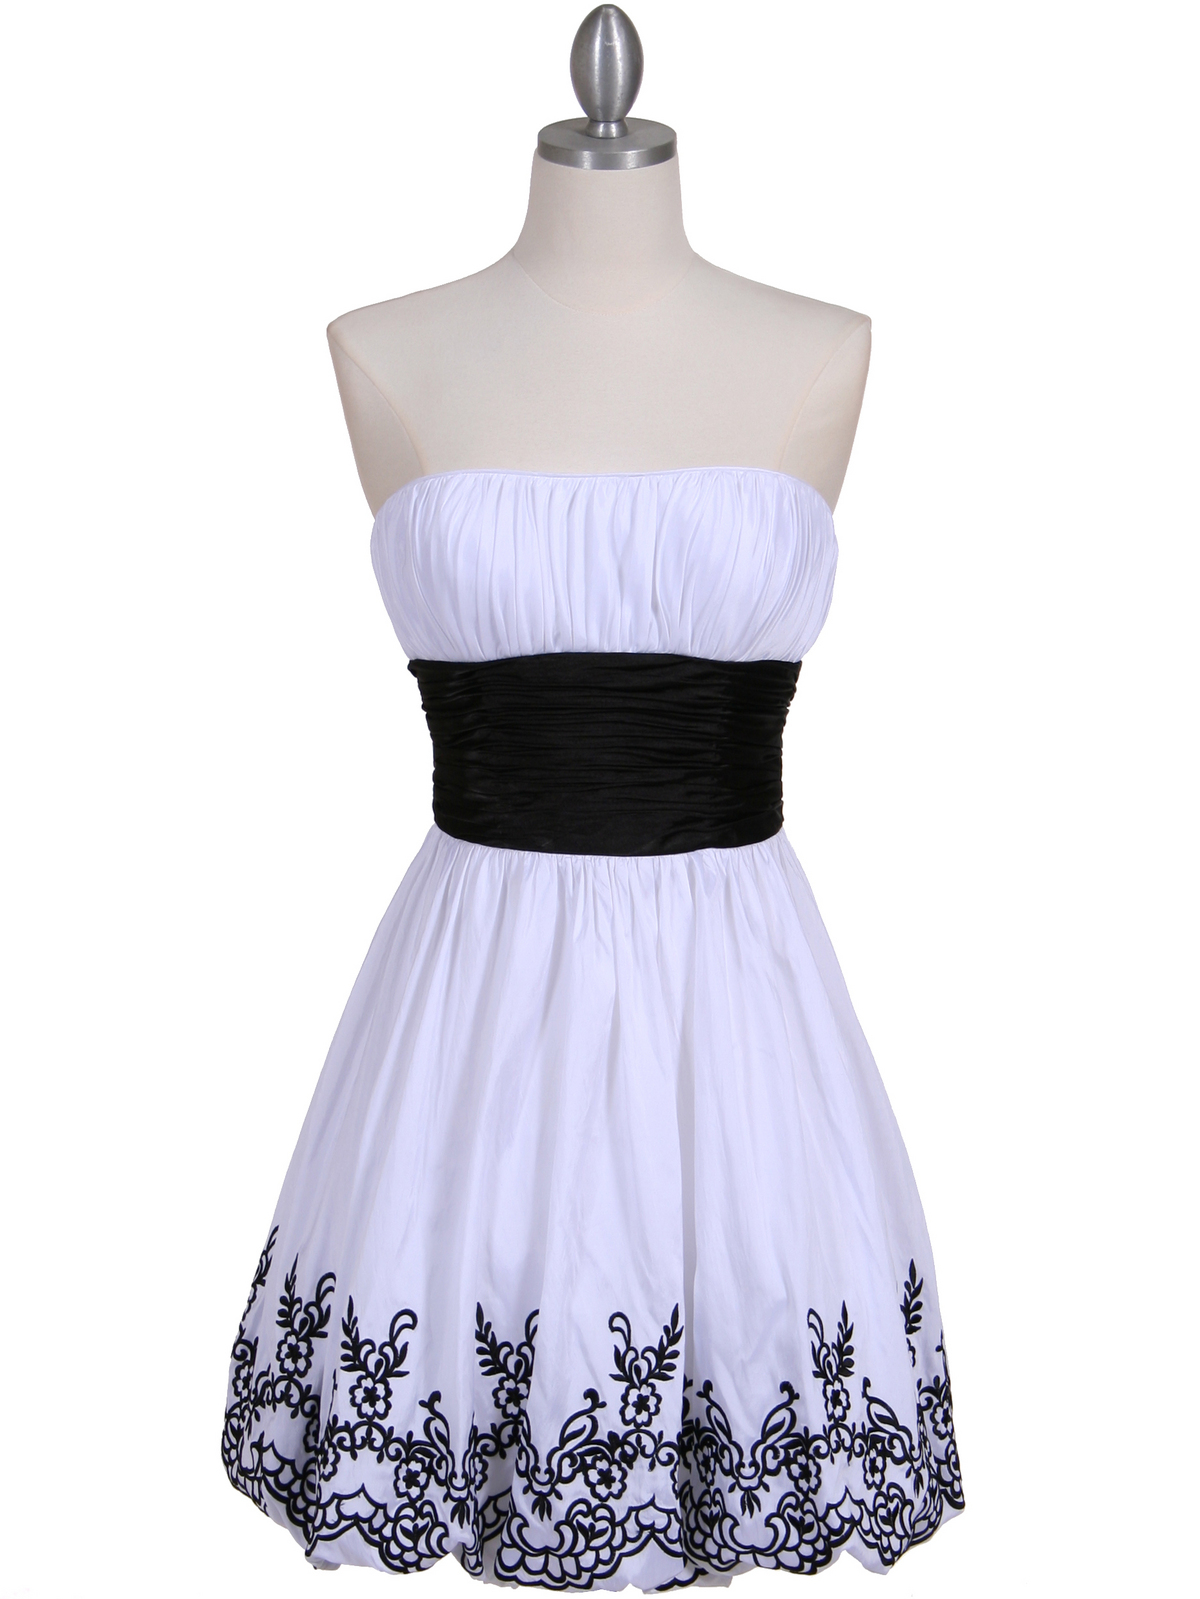 Pre Teen Cocktail Dresses,Buy cheap Pre Teen Cocktail Dresses with